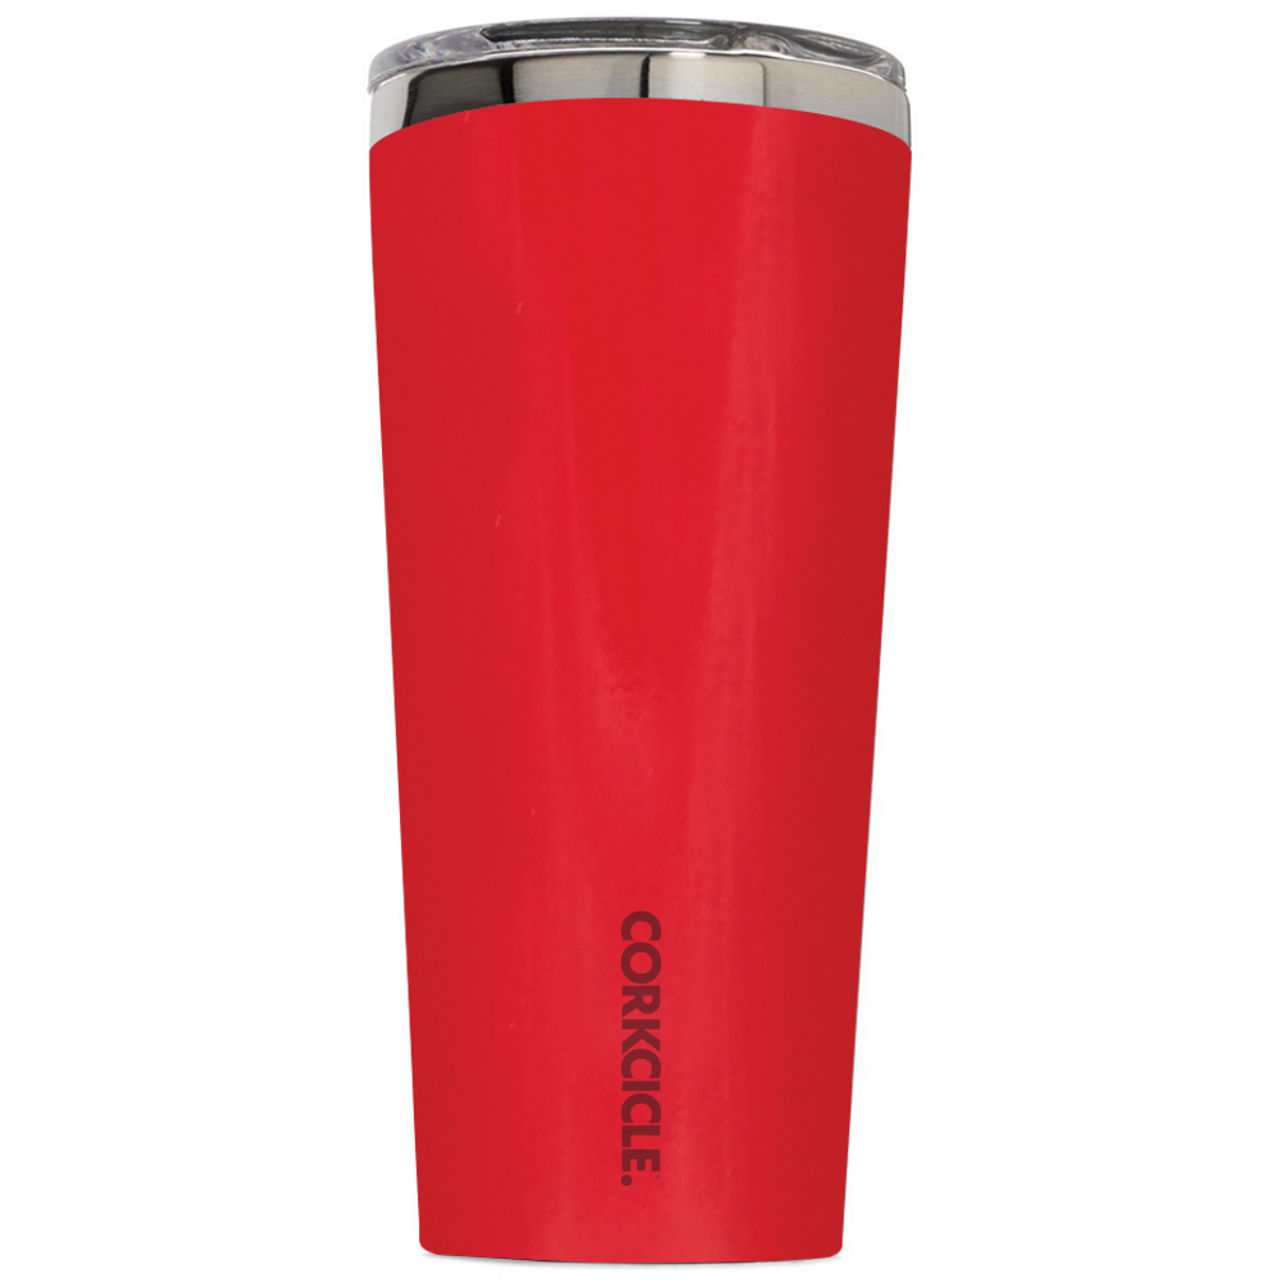 2cfee488b04 Corkcicle Classic Tumbler 24 oz | Personalized | Perfect Etch